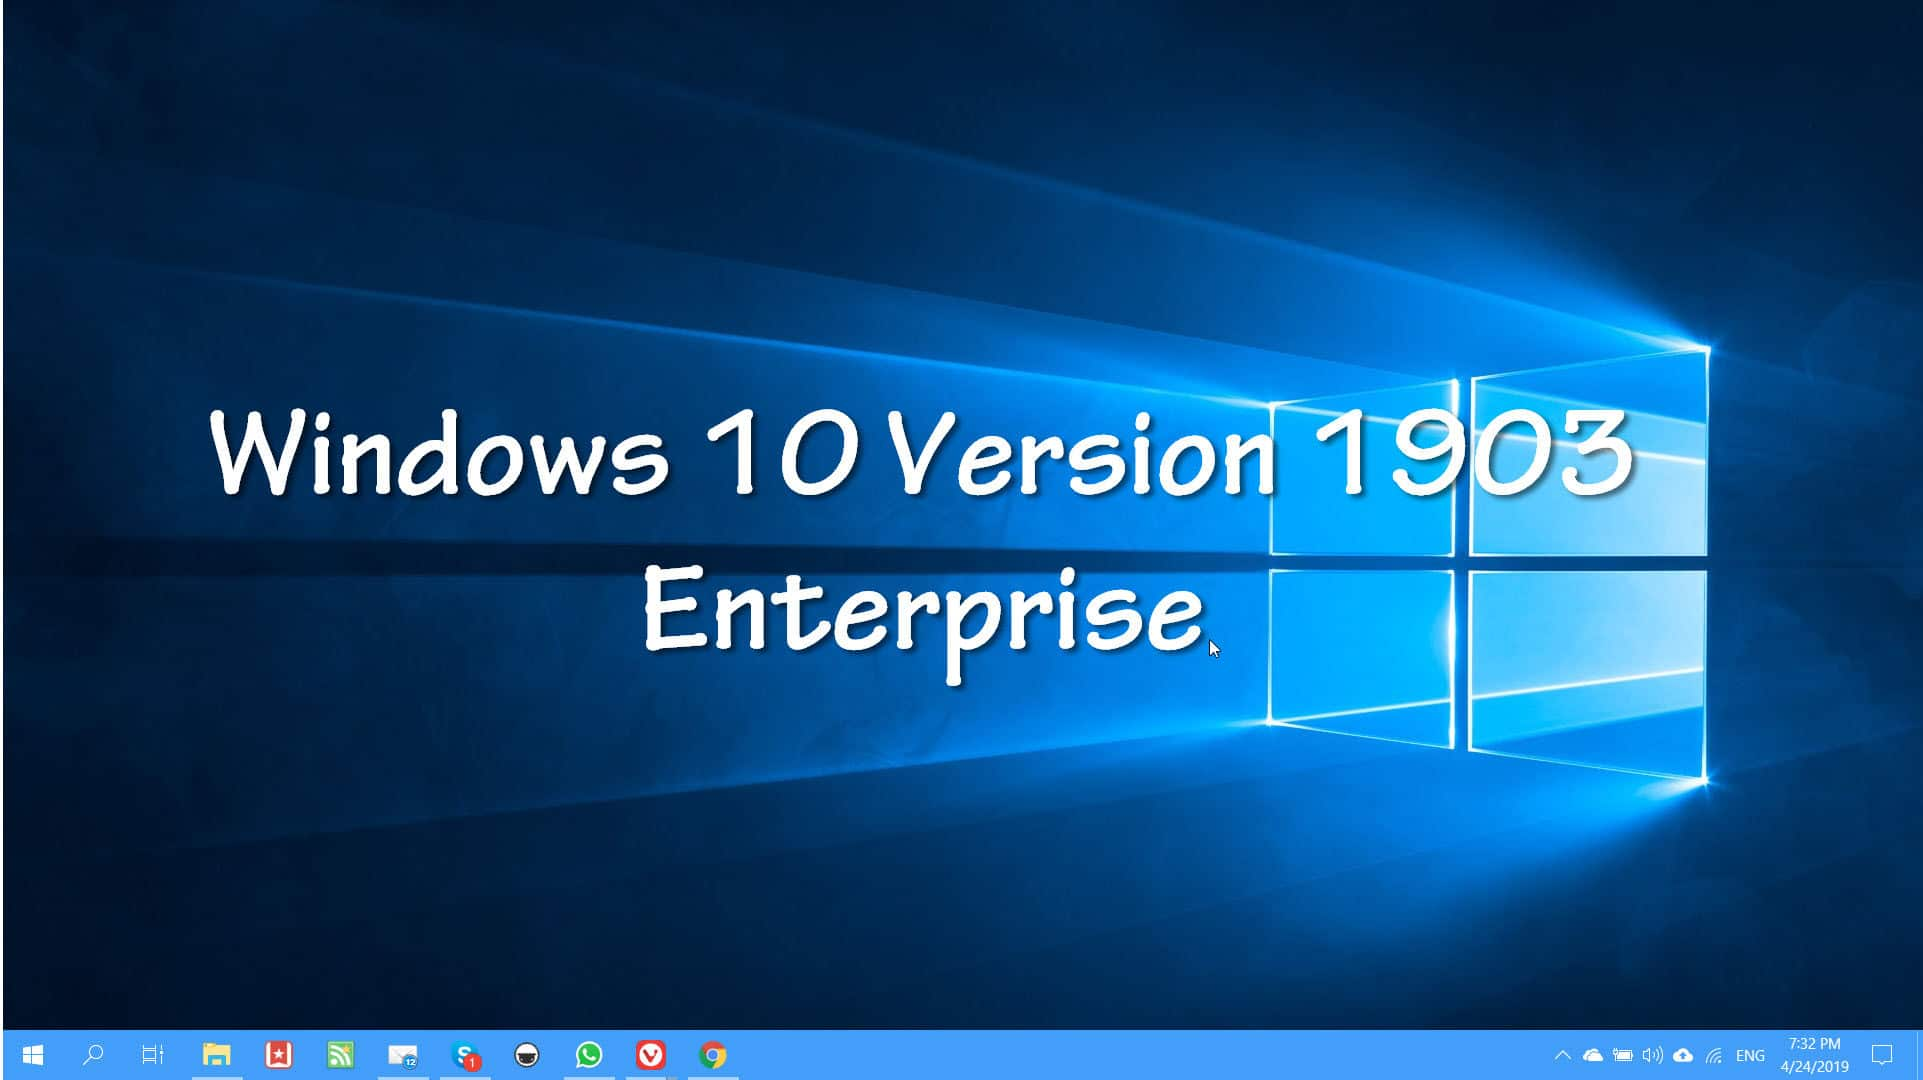 Download Windows 10 Version 1903 Enterprise Edition Now